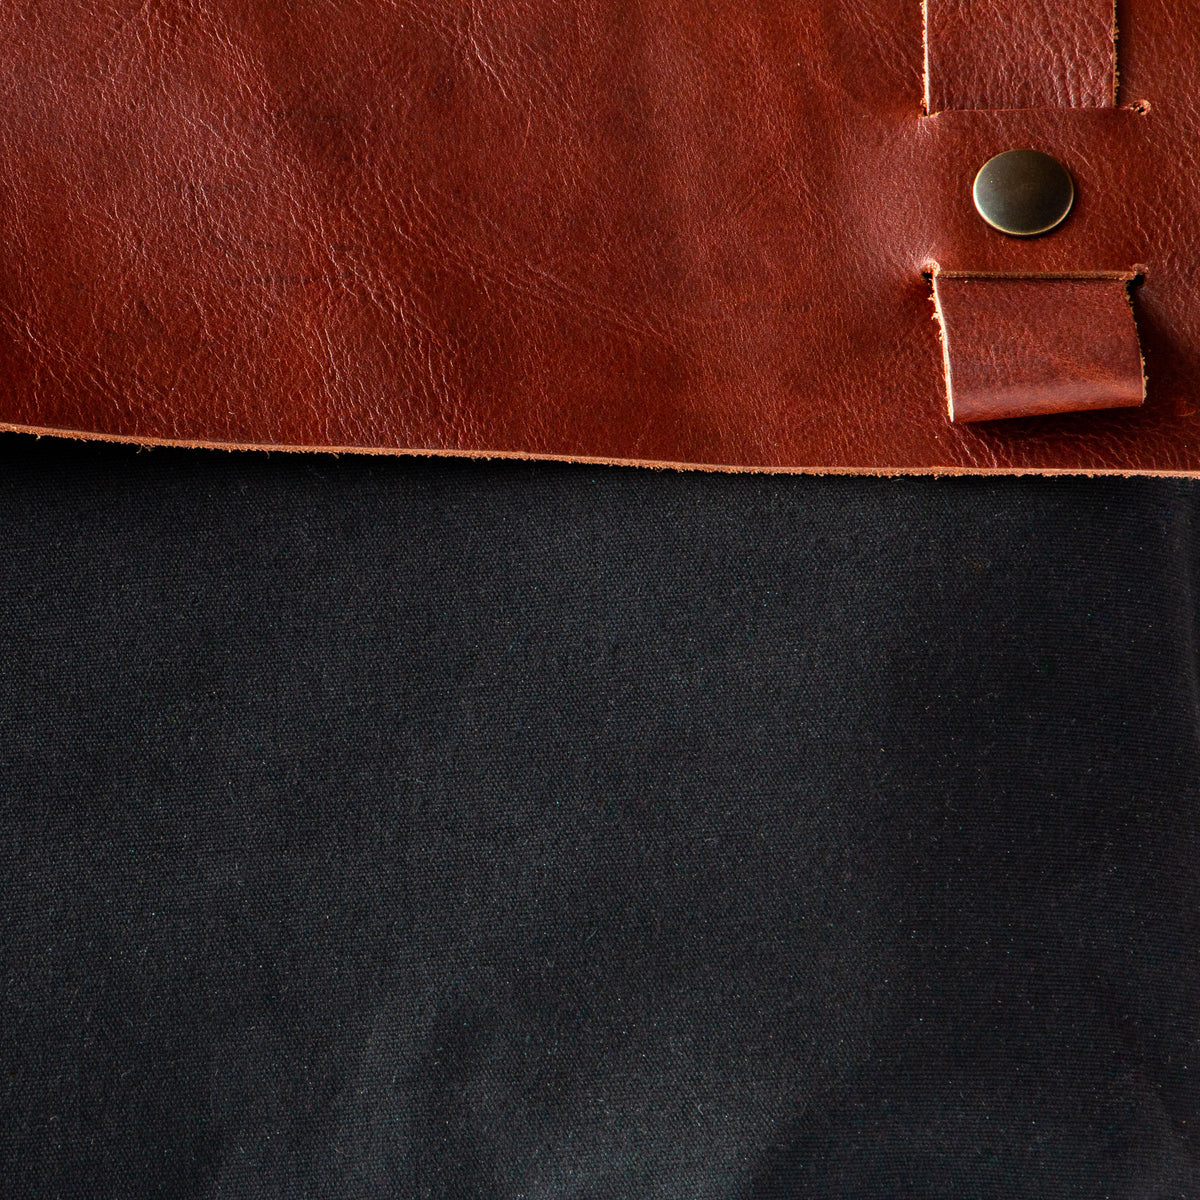 Andes - Brown Leather Handmade 15 Inch Laptop Backpack - Leather & Waxed Cotton - Sold by Chic & Basta